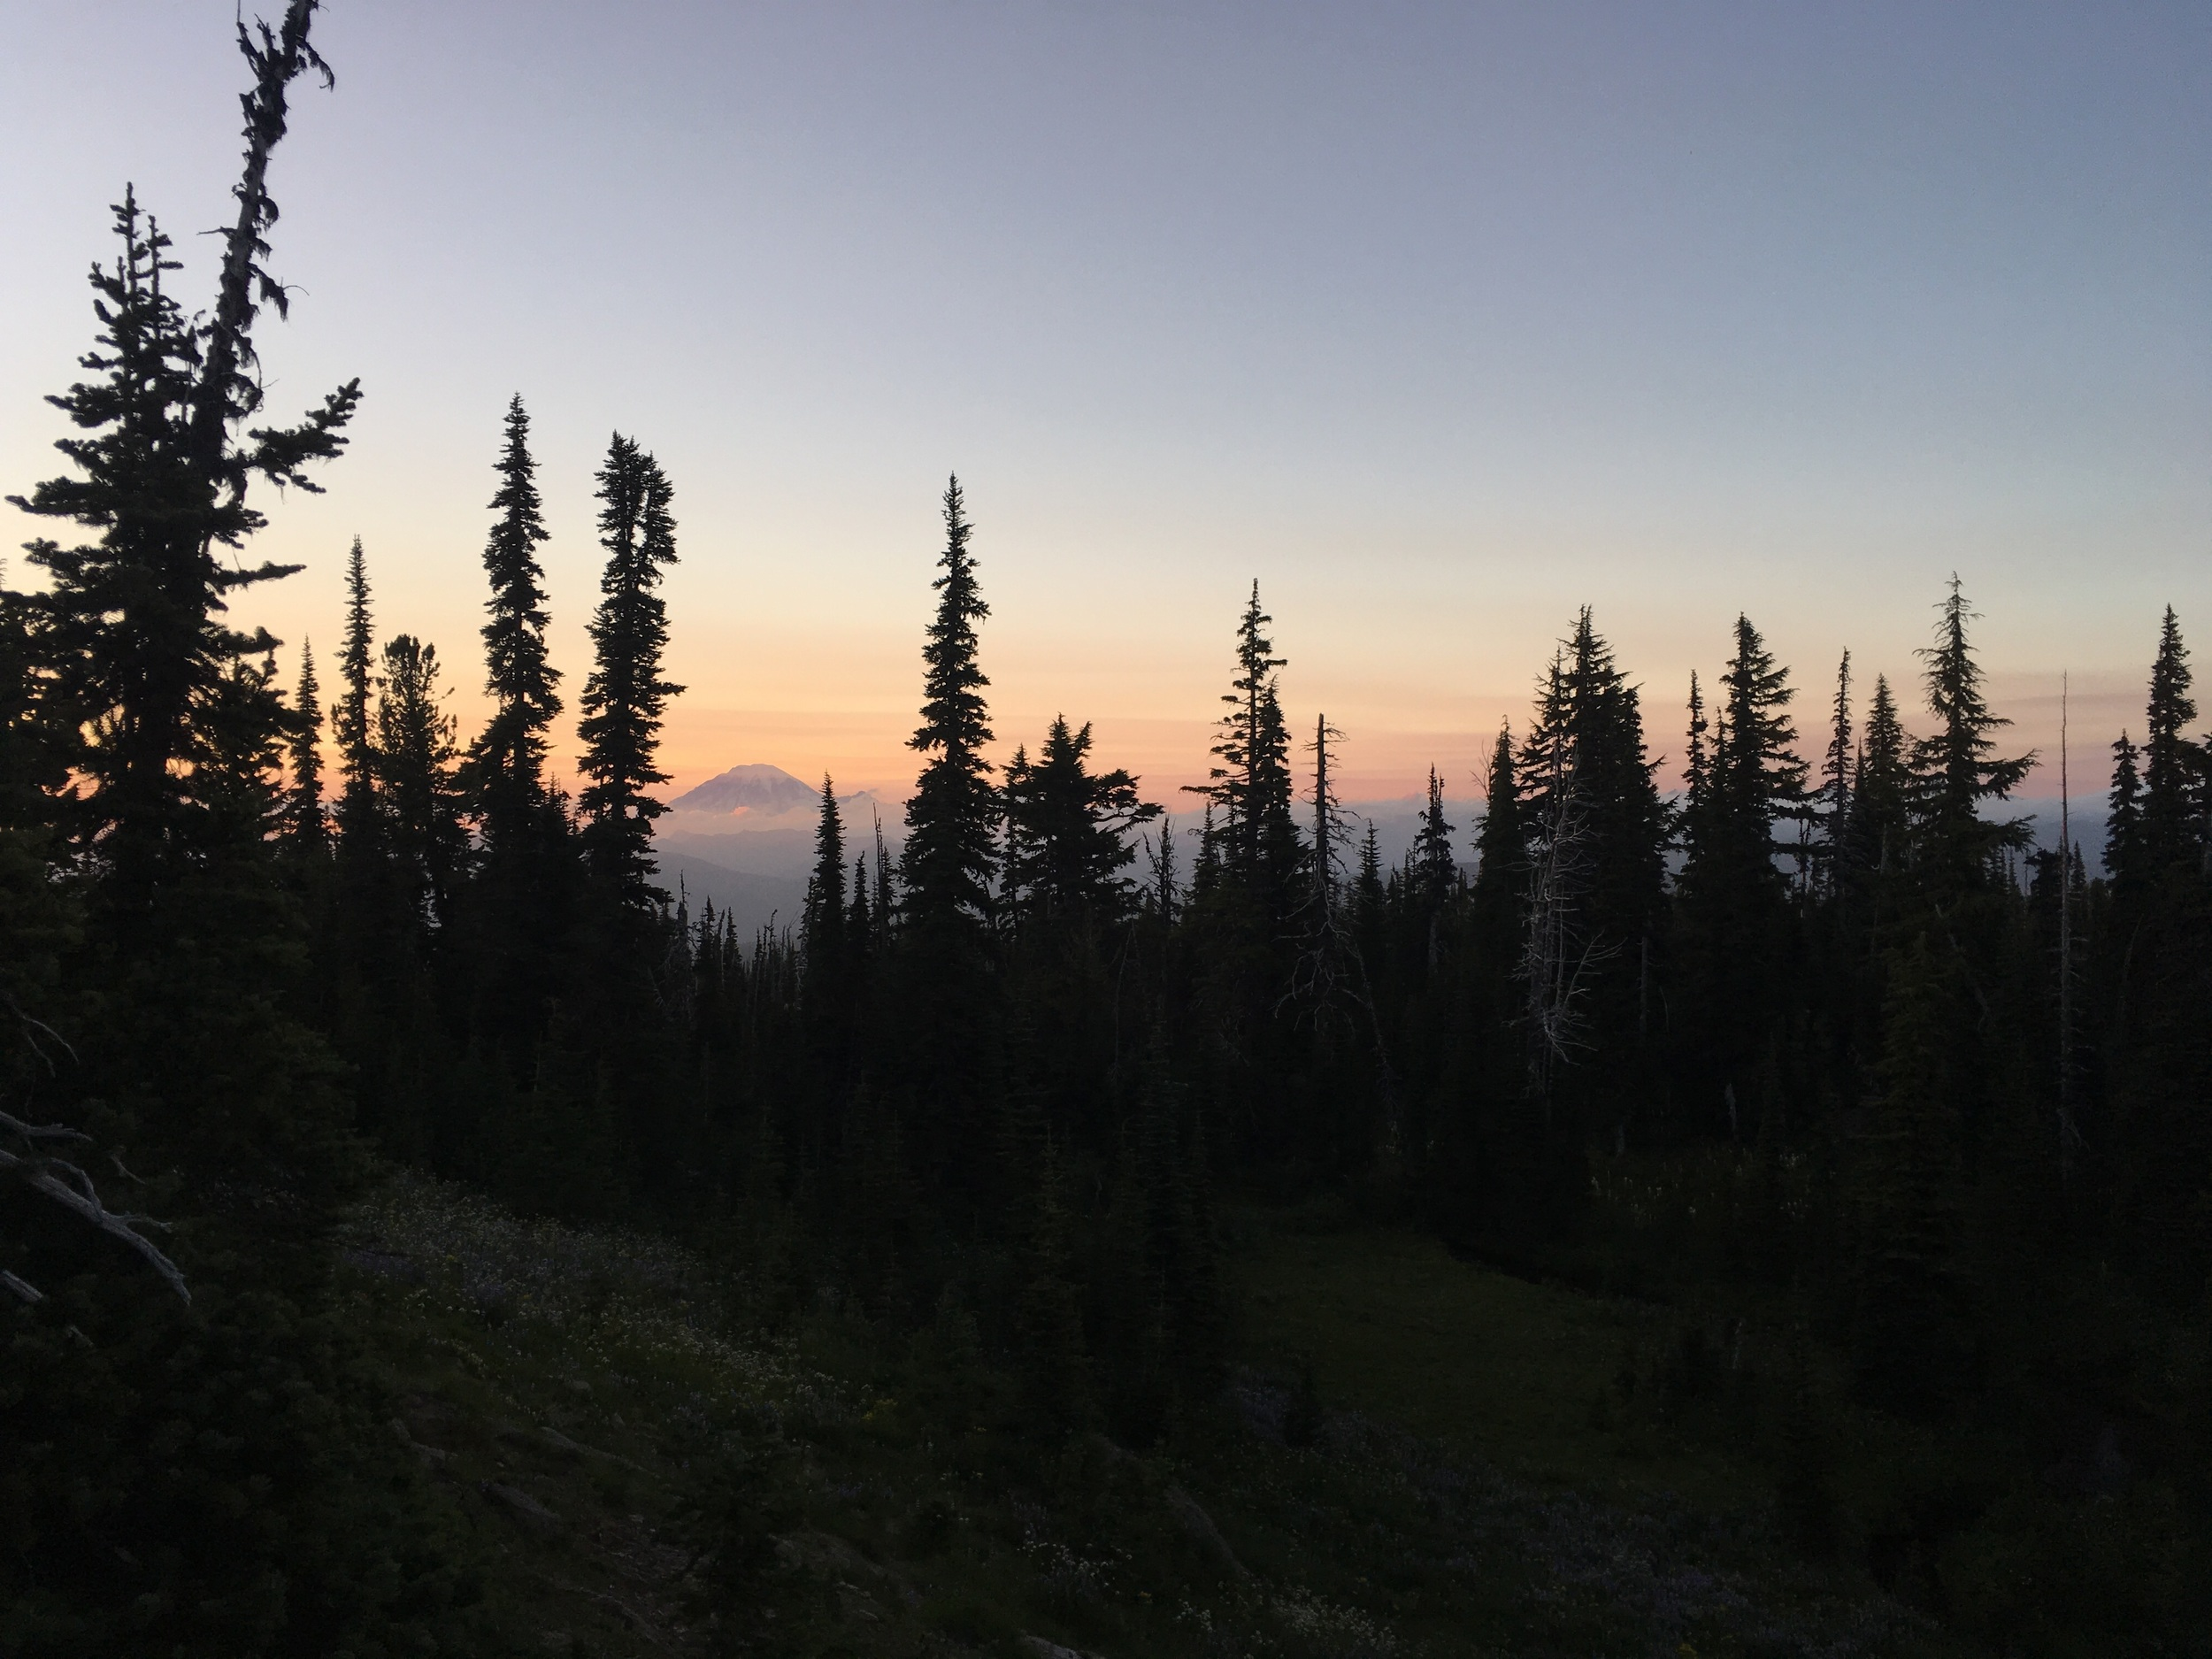 Rainier at dusk from our campsite at Killen Creek.